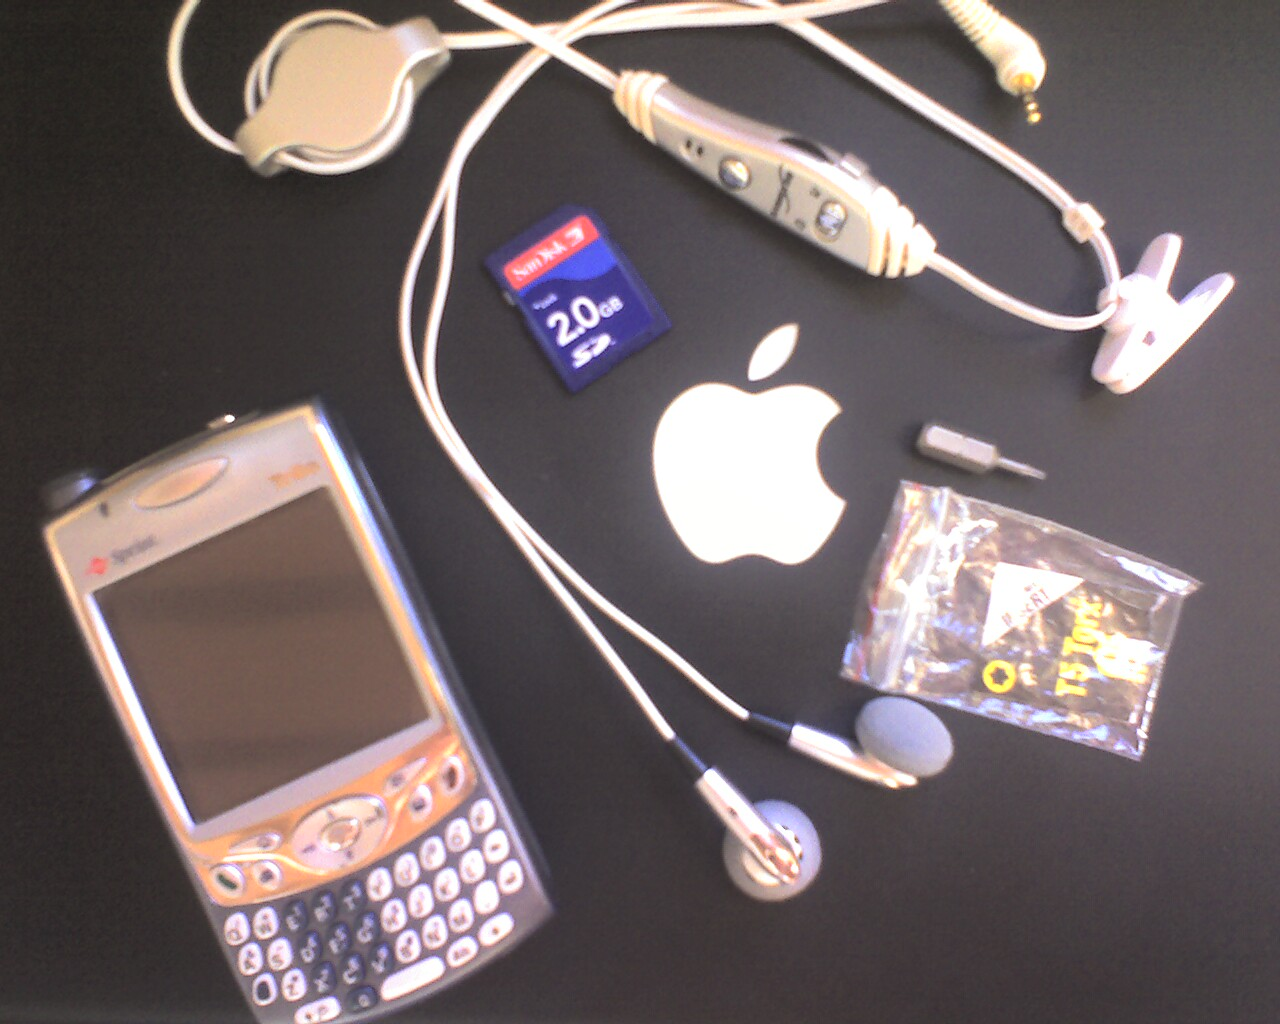 I built an iPhone for less than $100! | Flickr - Photo Sharing!